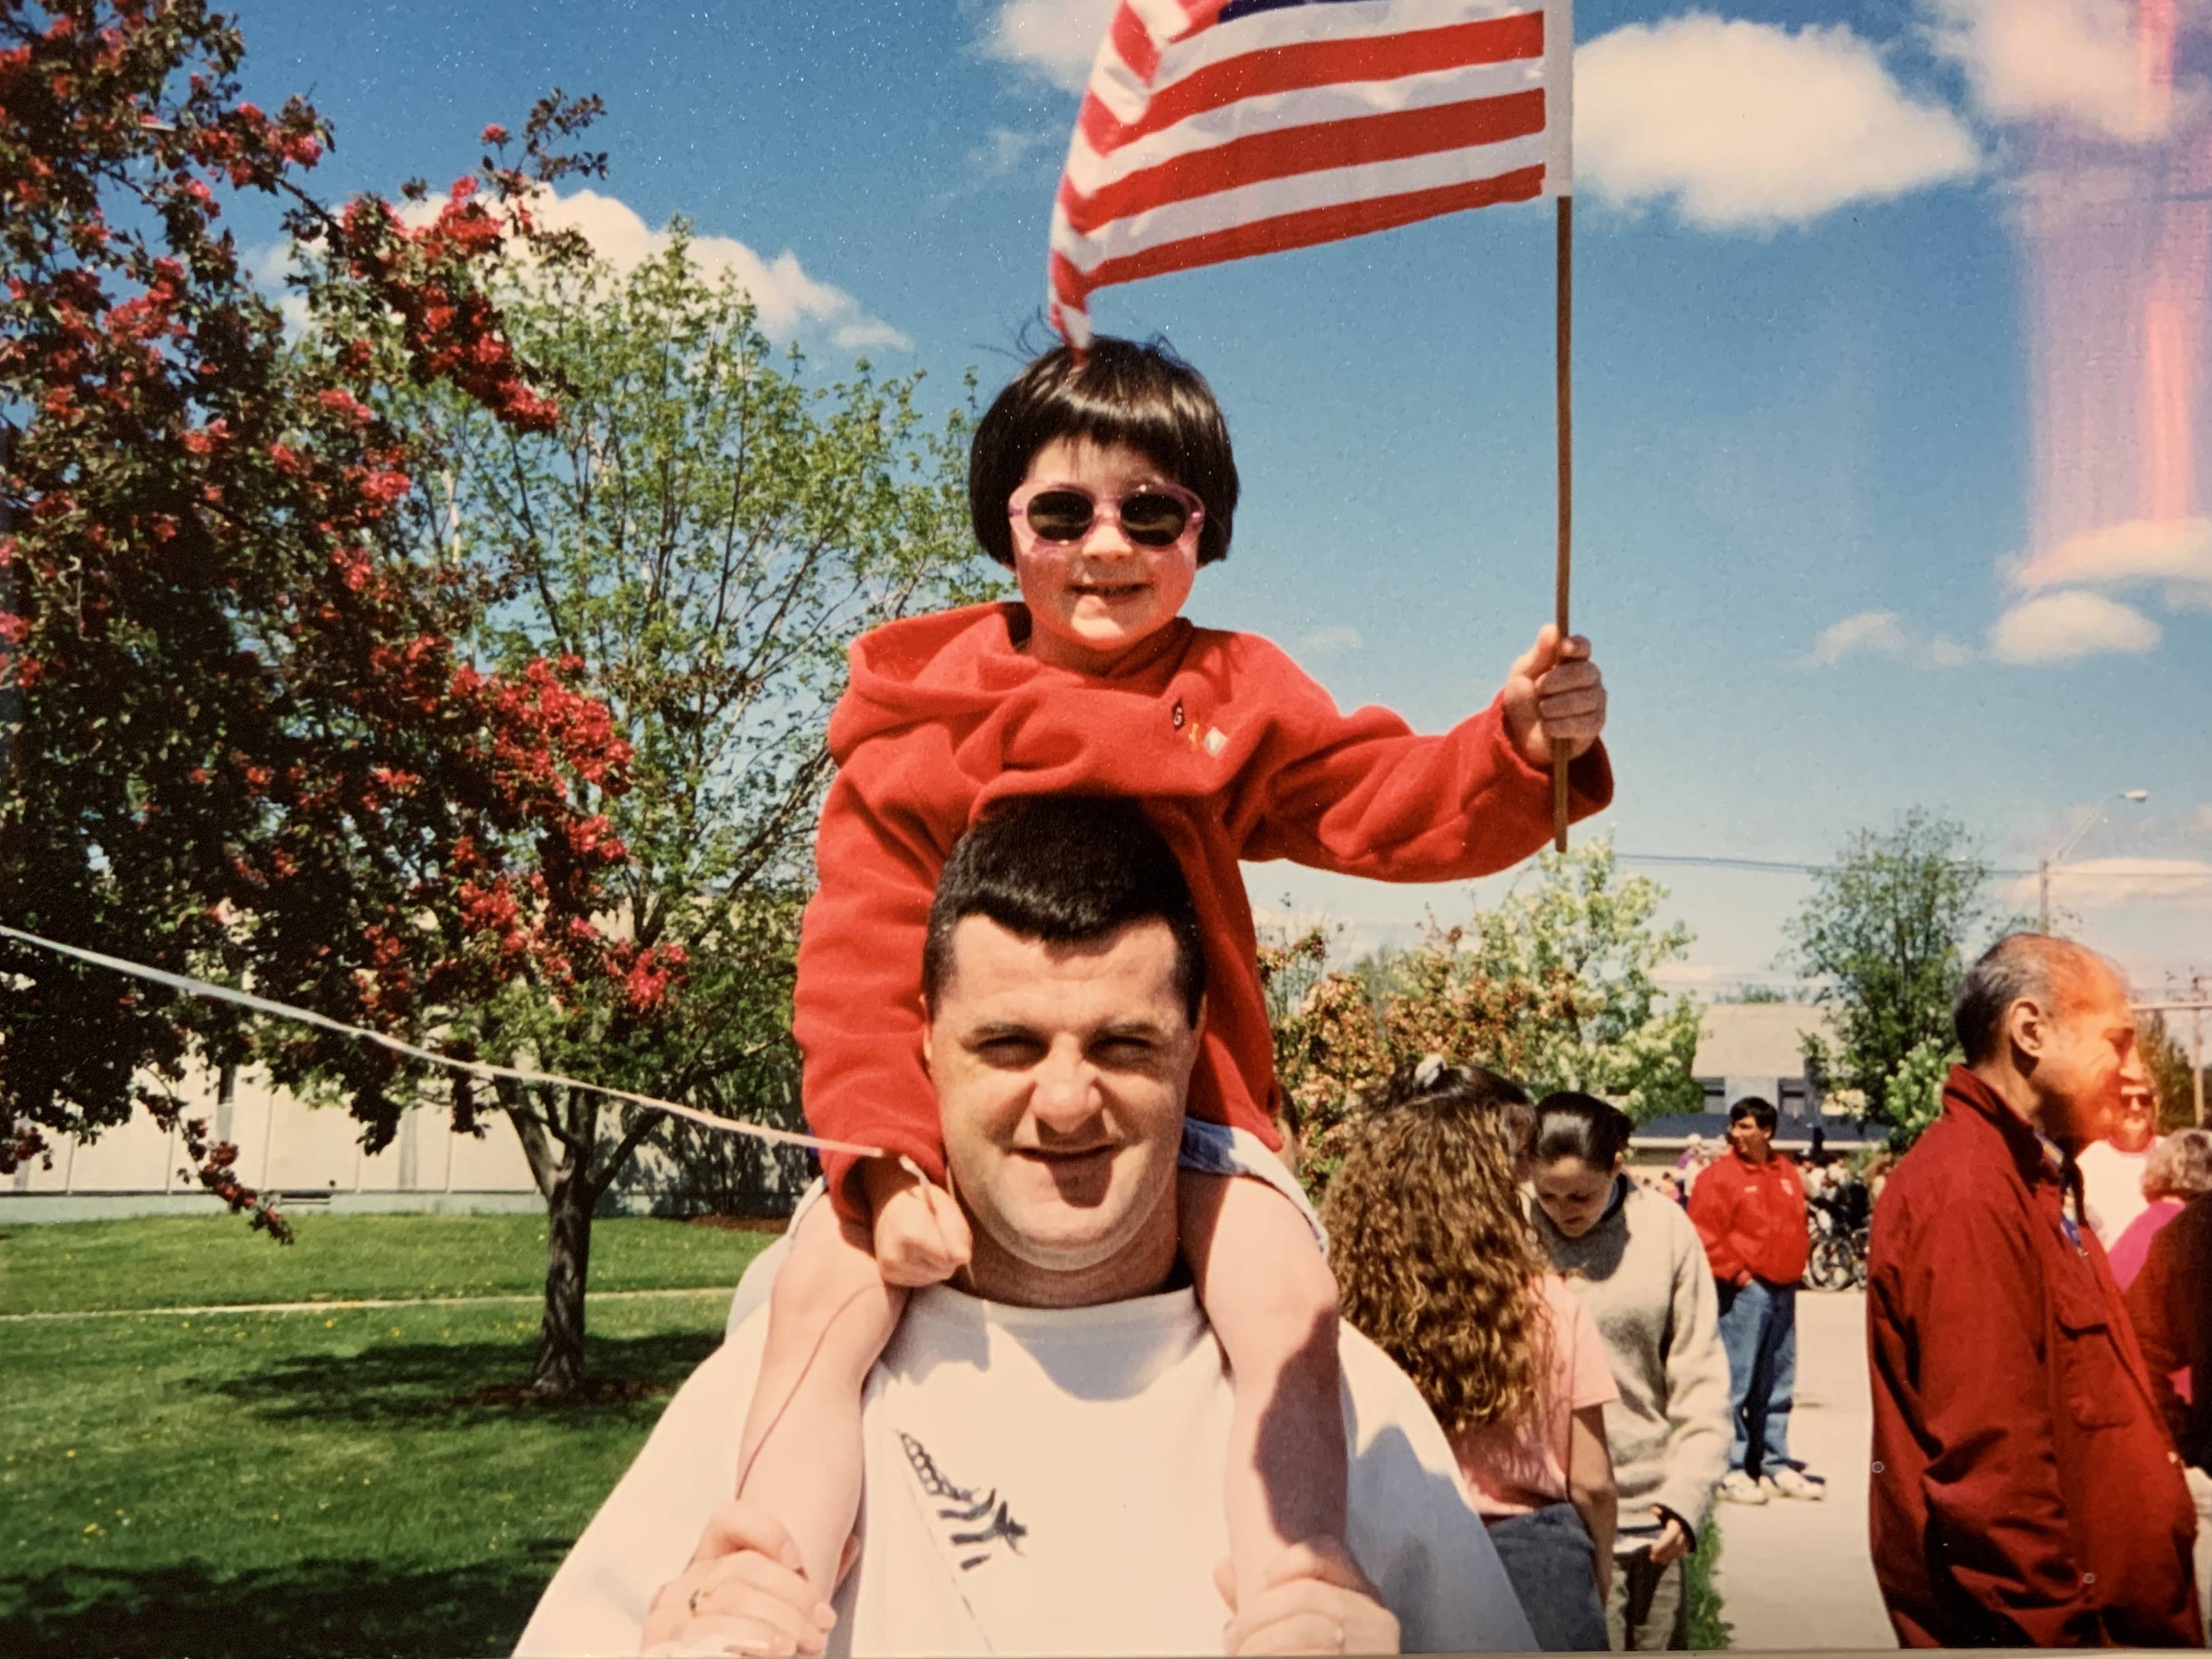 Dale Saran and his daughter Rebecca on the Fourth of July 1997. After a 20-year career in the Marines, Saran intended to transfer his Post-9/11 GI Bill education benefit to his daughters. It worked — until it didn't.